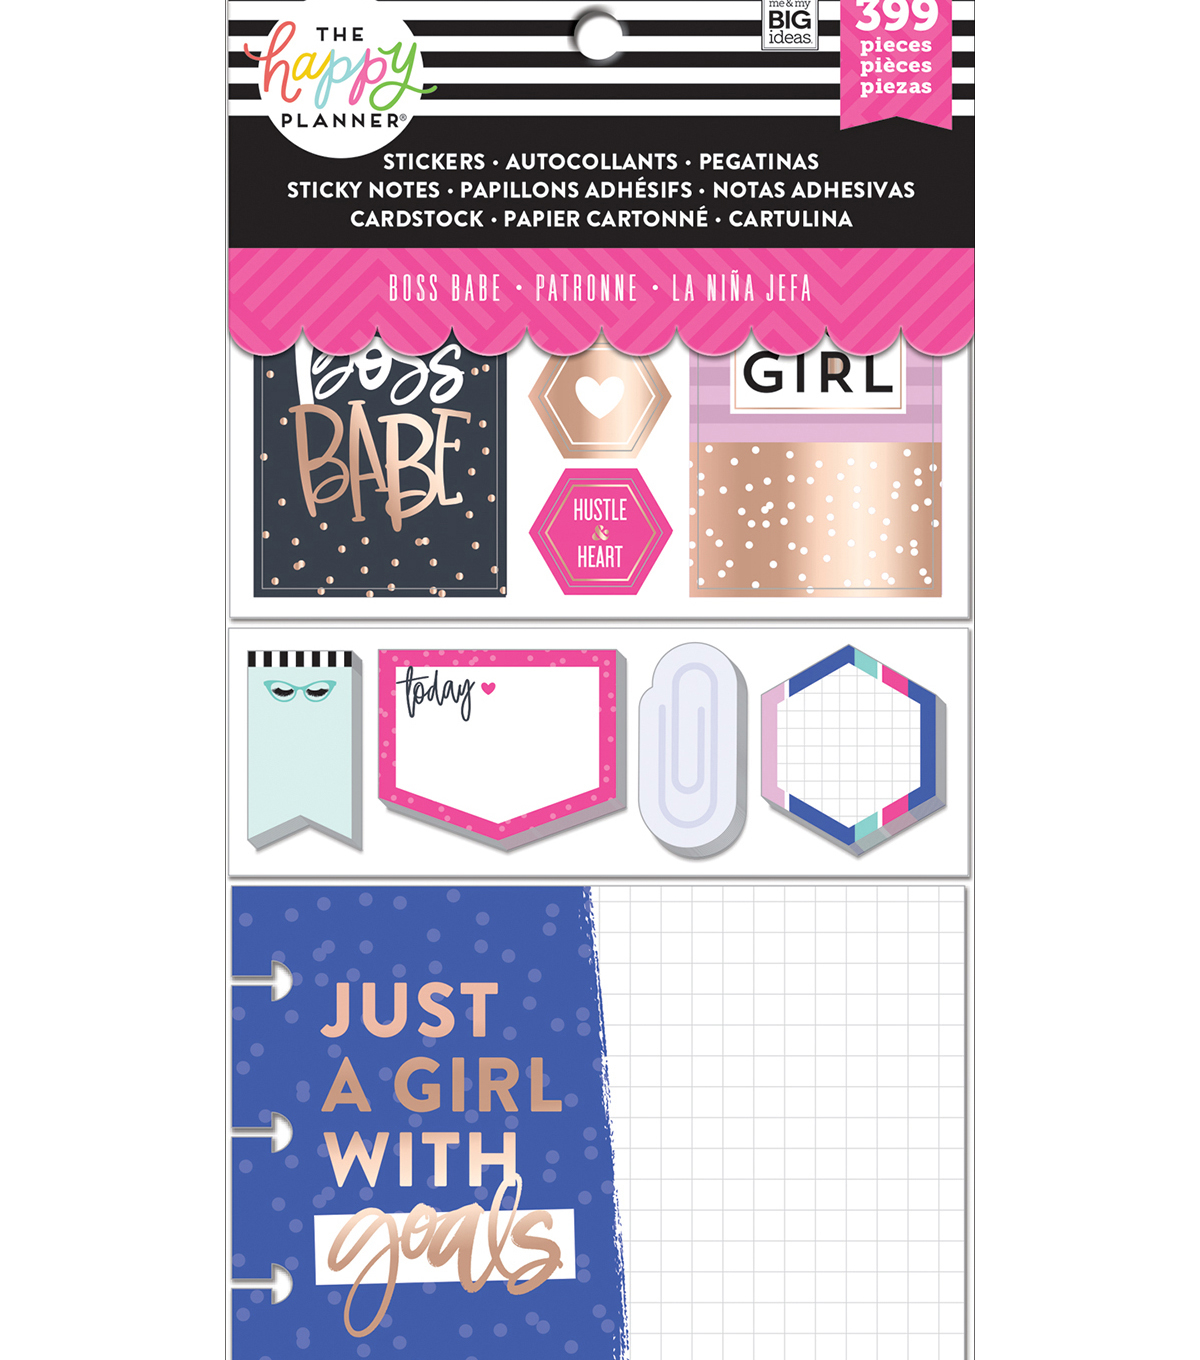 Me My Big Ideas The Happy Planner Sticker Sticky Note And Cardstock Multipack Boss Babe